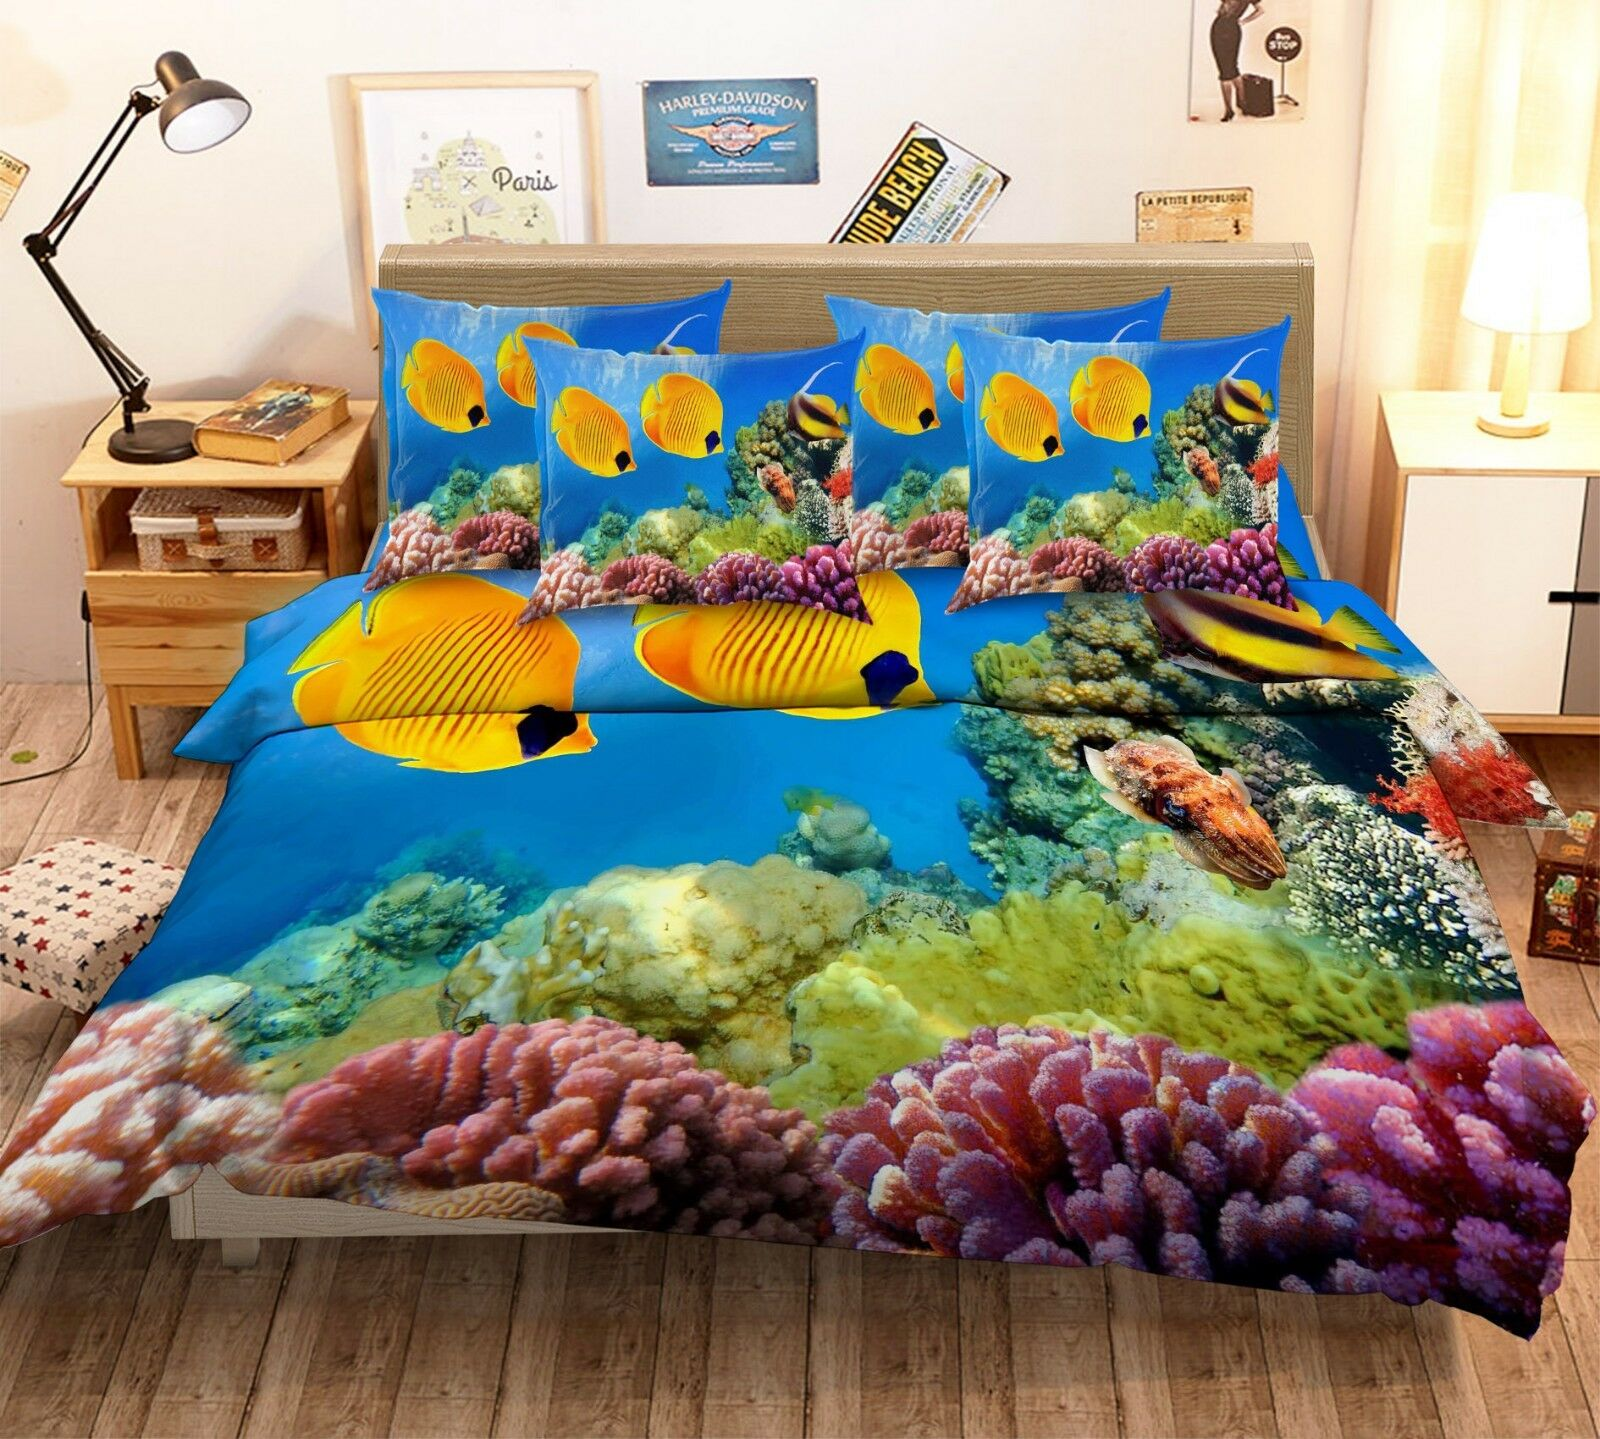 3D Tropical Fish Coral 1 Bed Pillowcases Pillowcases Pillowcases Quilt Duvet Cover Set Single Queen King 9ad6e6